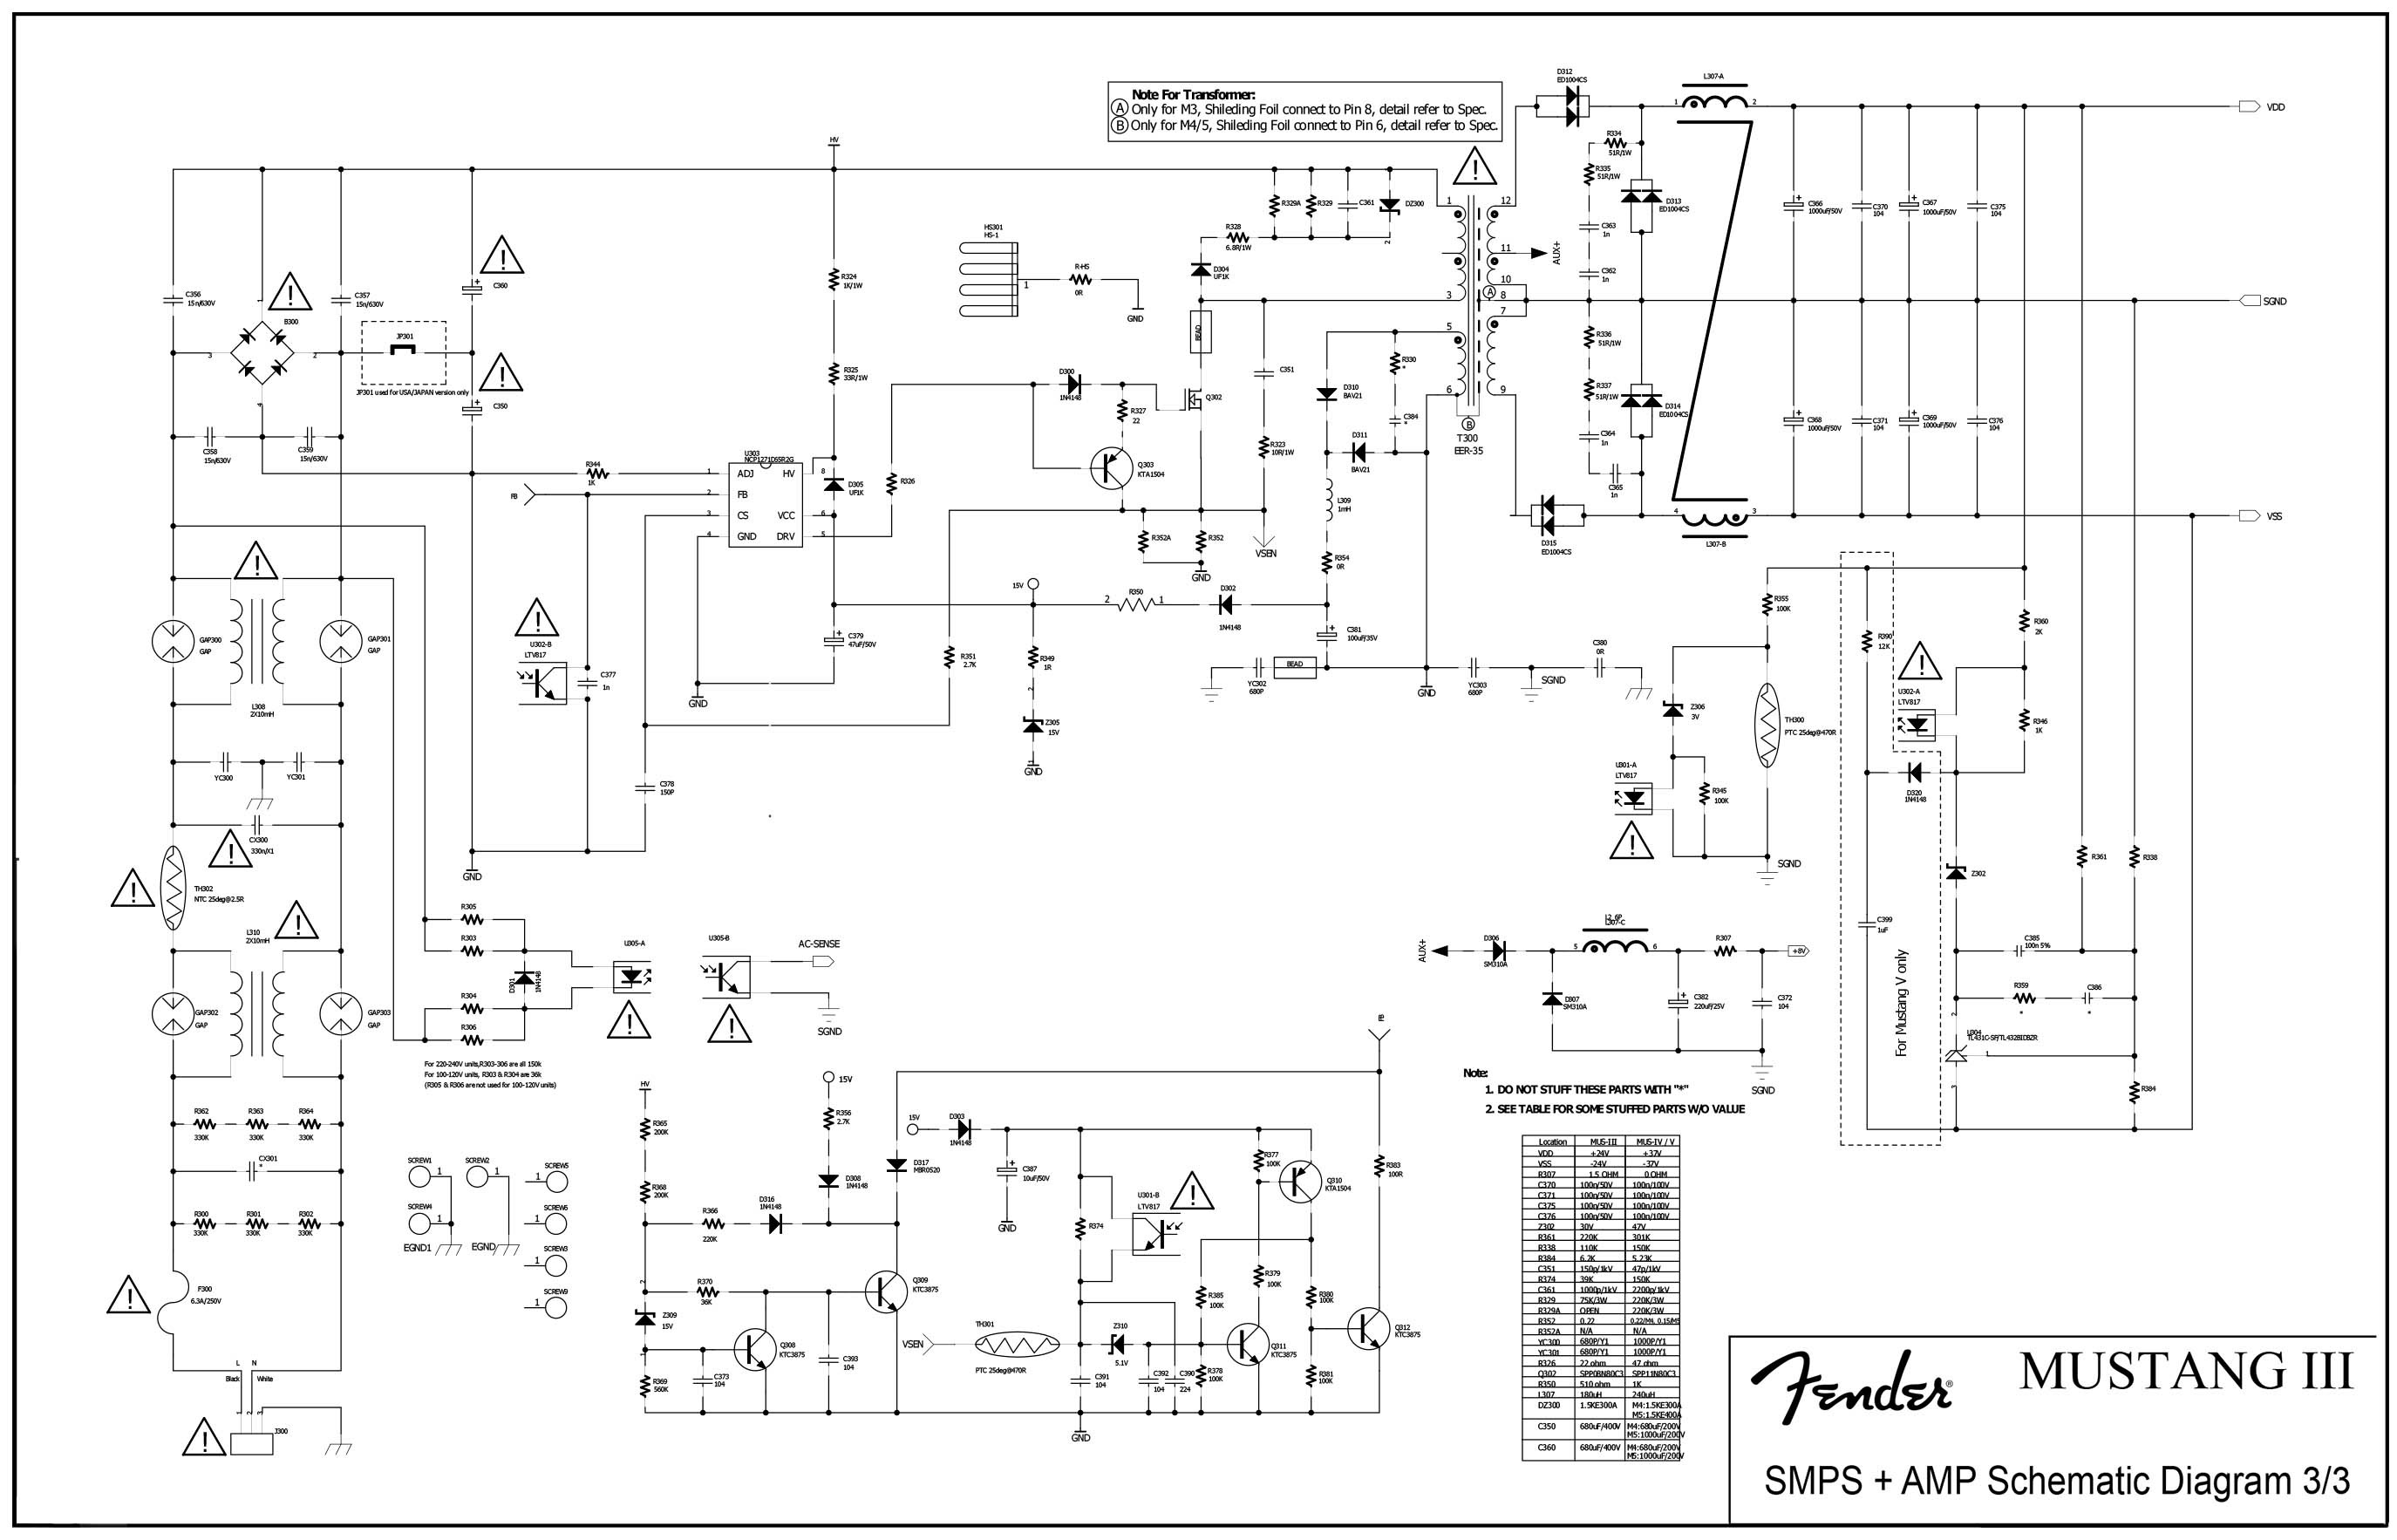 Music Electronics Forum on fender telecaster schematic, guitar schematic, cbs fender champ schematic, rickenbacker 4003 schematic, amp schematic, rickenbacker 4001 schematic, bass schematic, wurlitzer 200 schematic, fender stratocaster schematic, the black strat schematic, fender squier schematic, mxr dyna comp schematic,